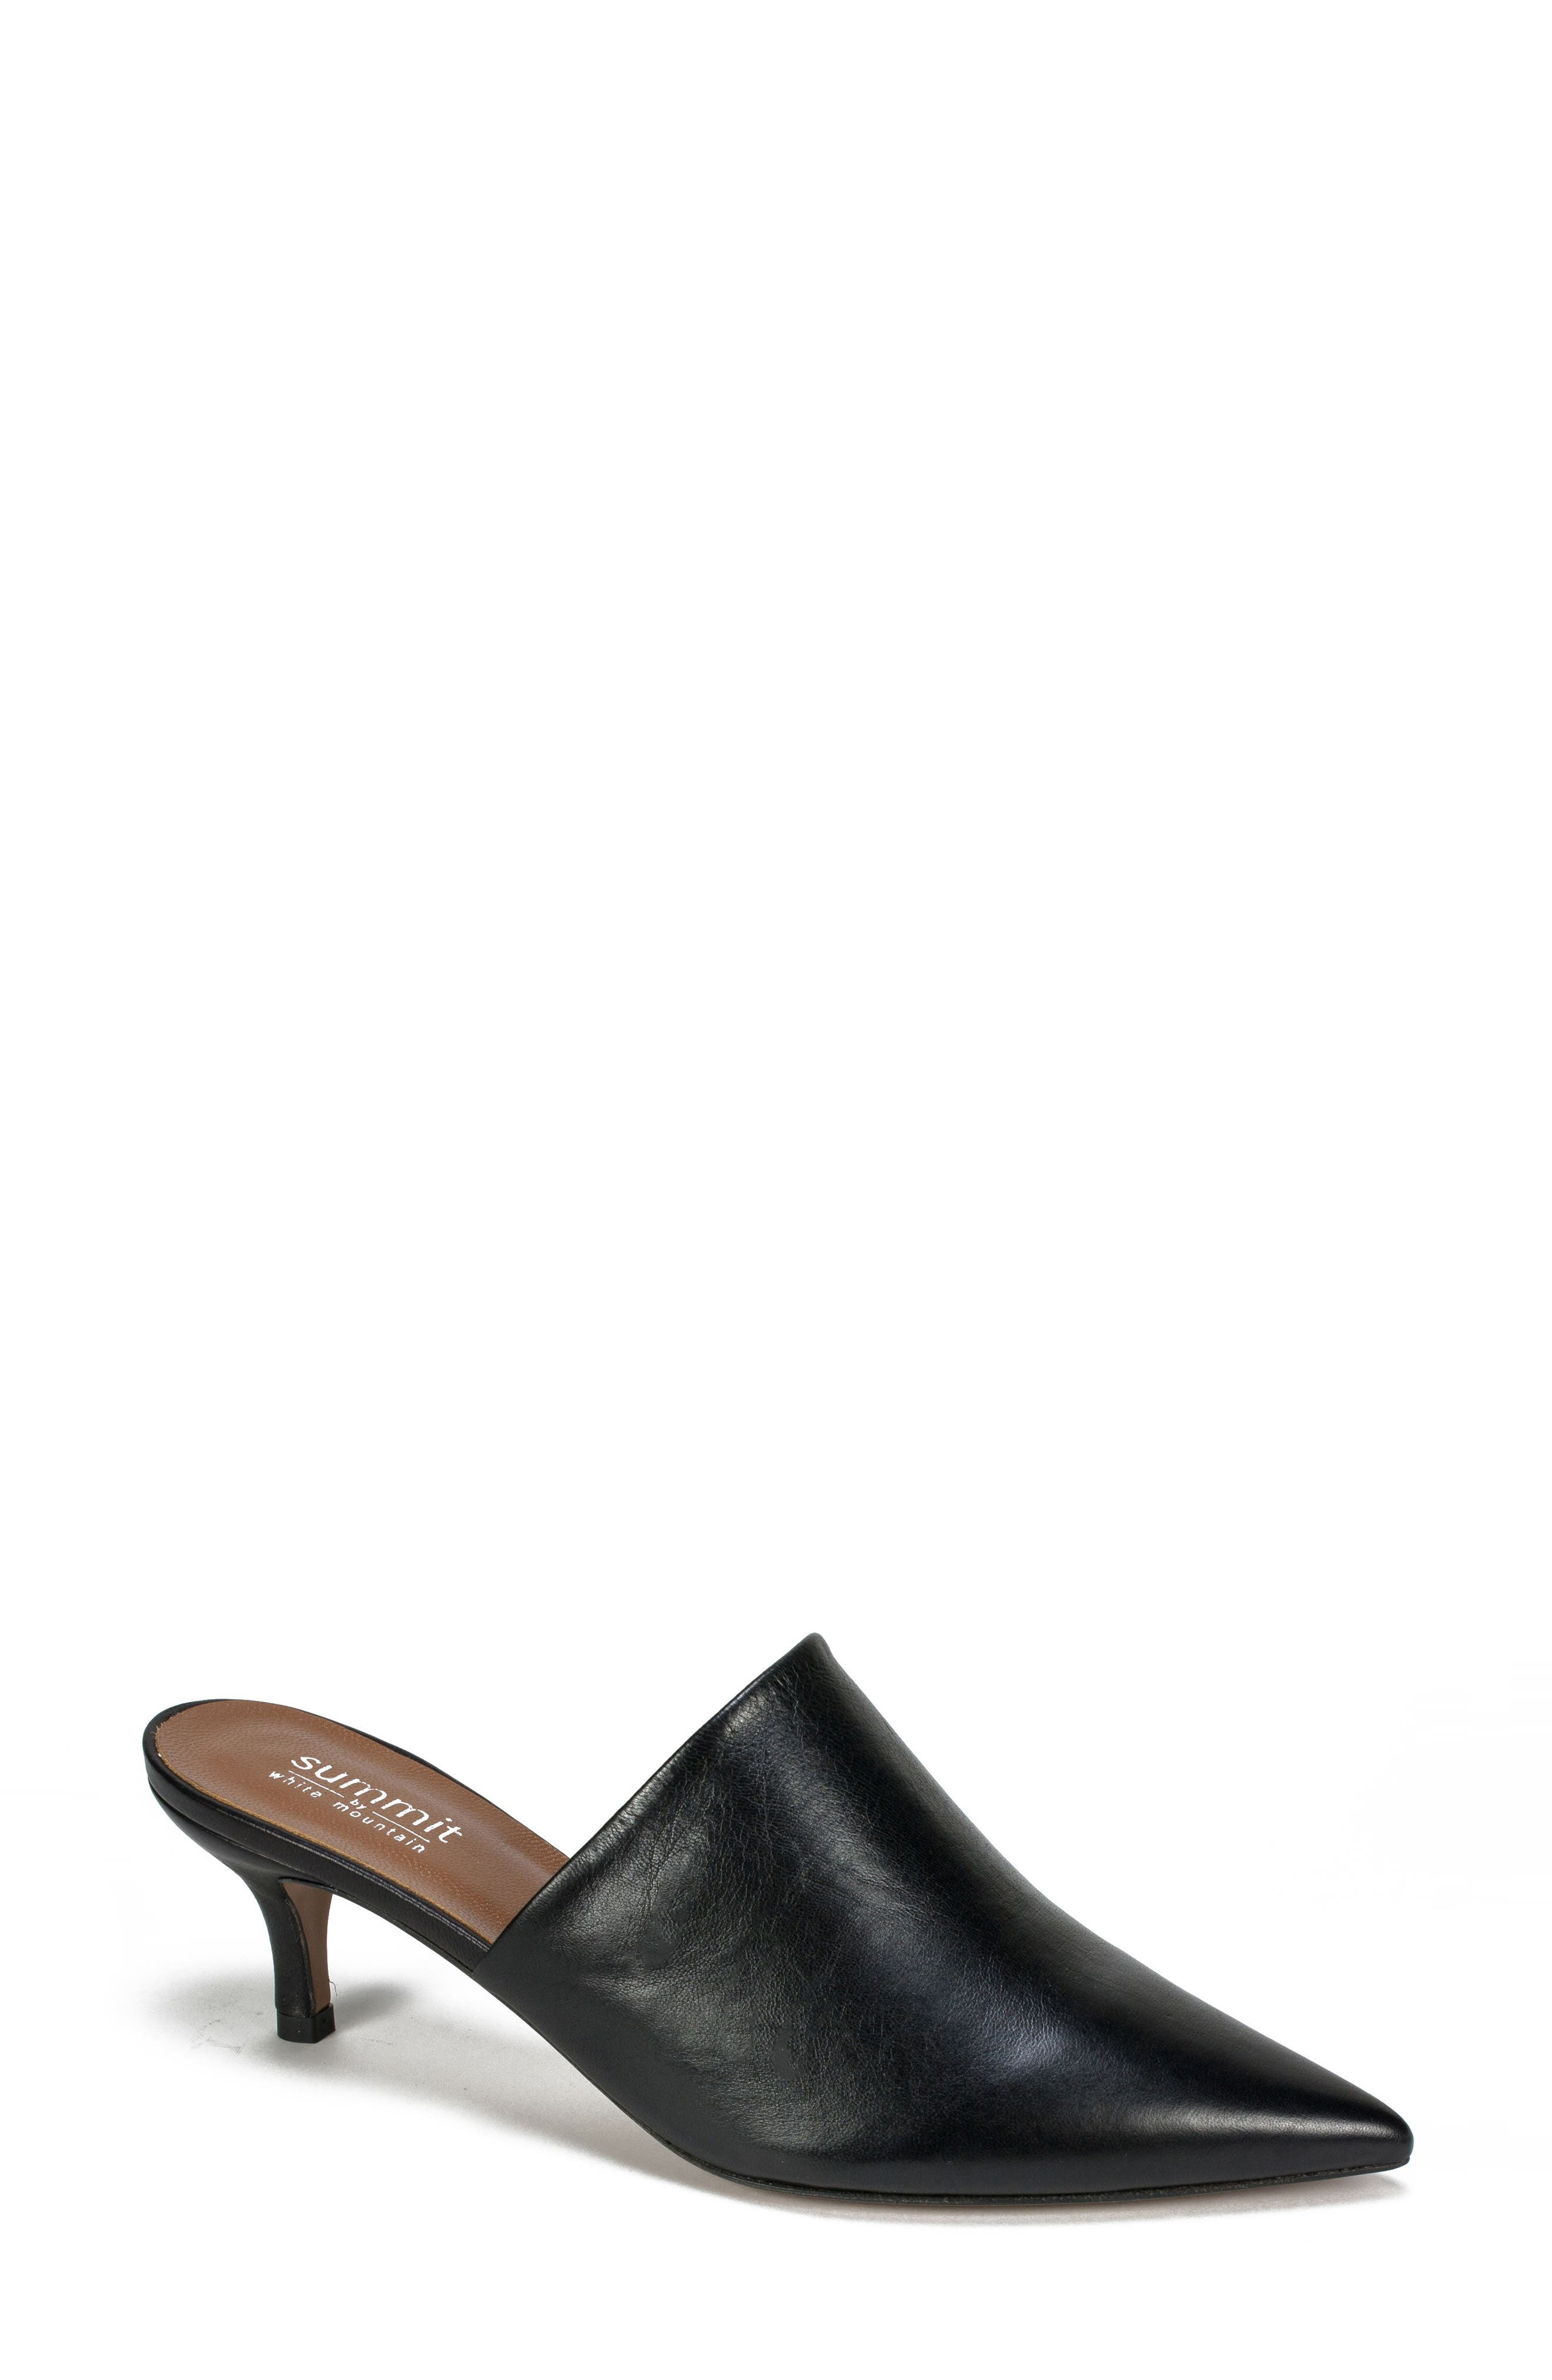 Piper Pointy Toe Mule,                             Main thumbnail 1, color,                             001